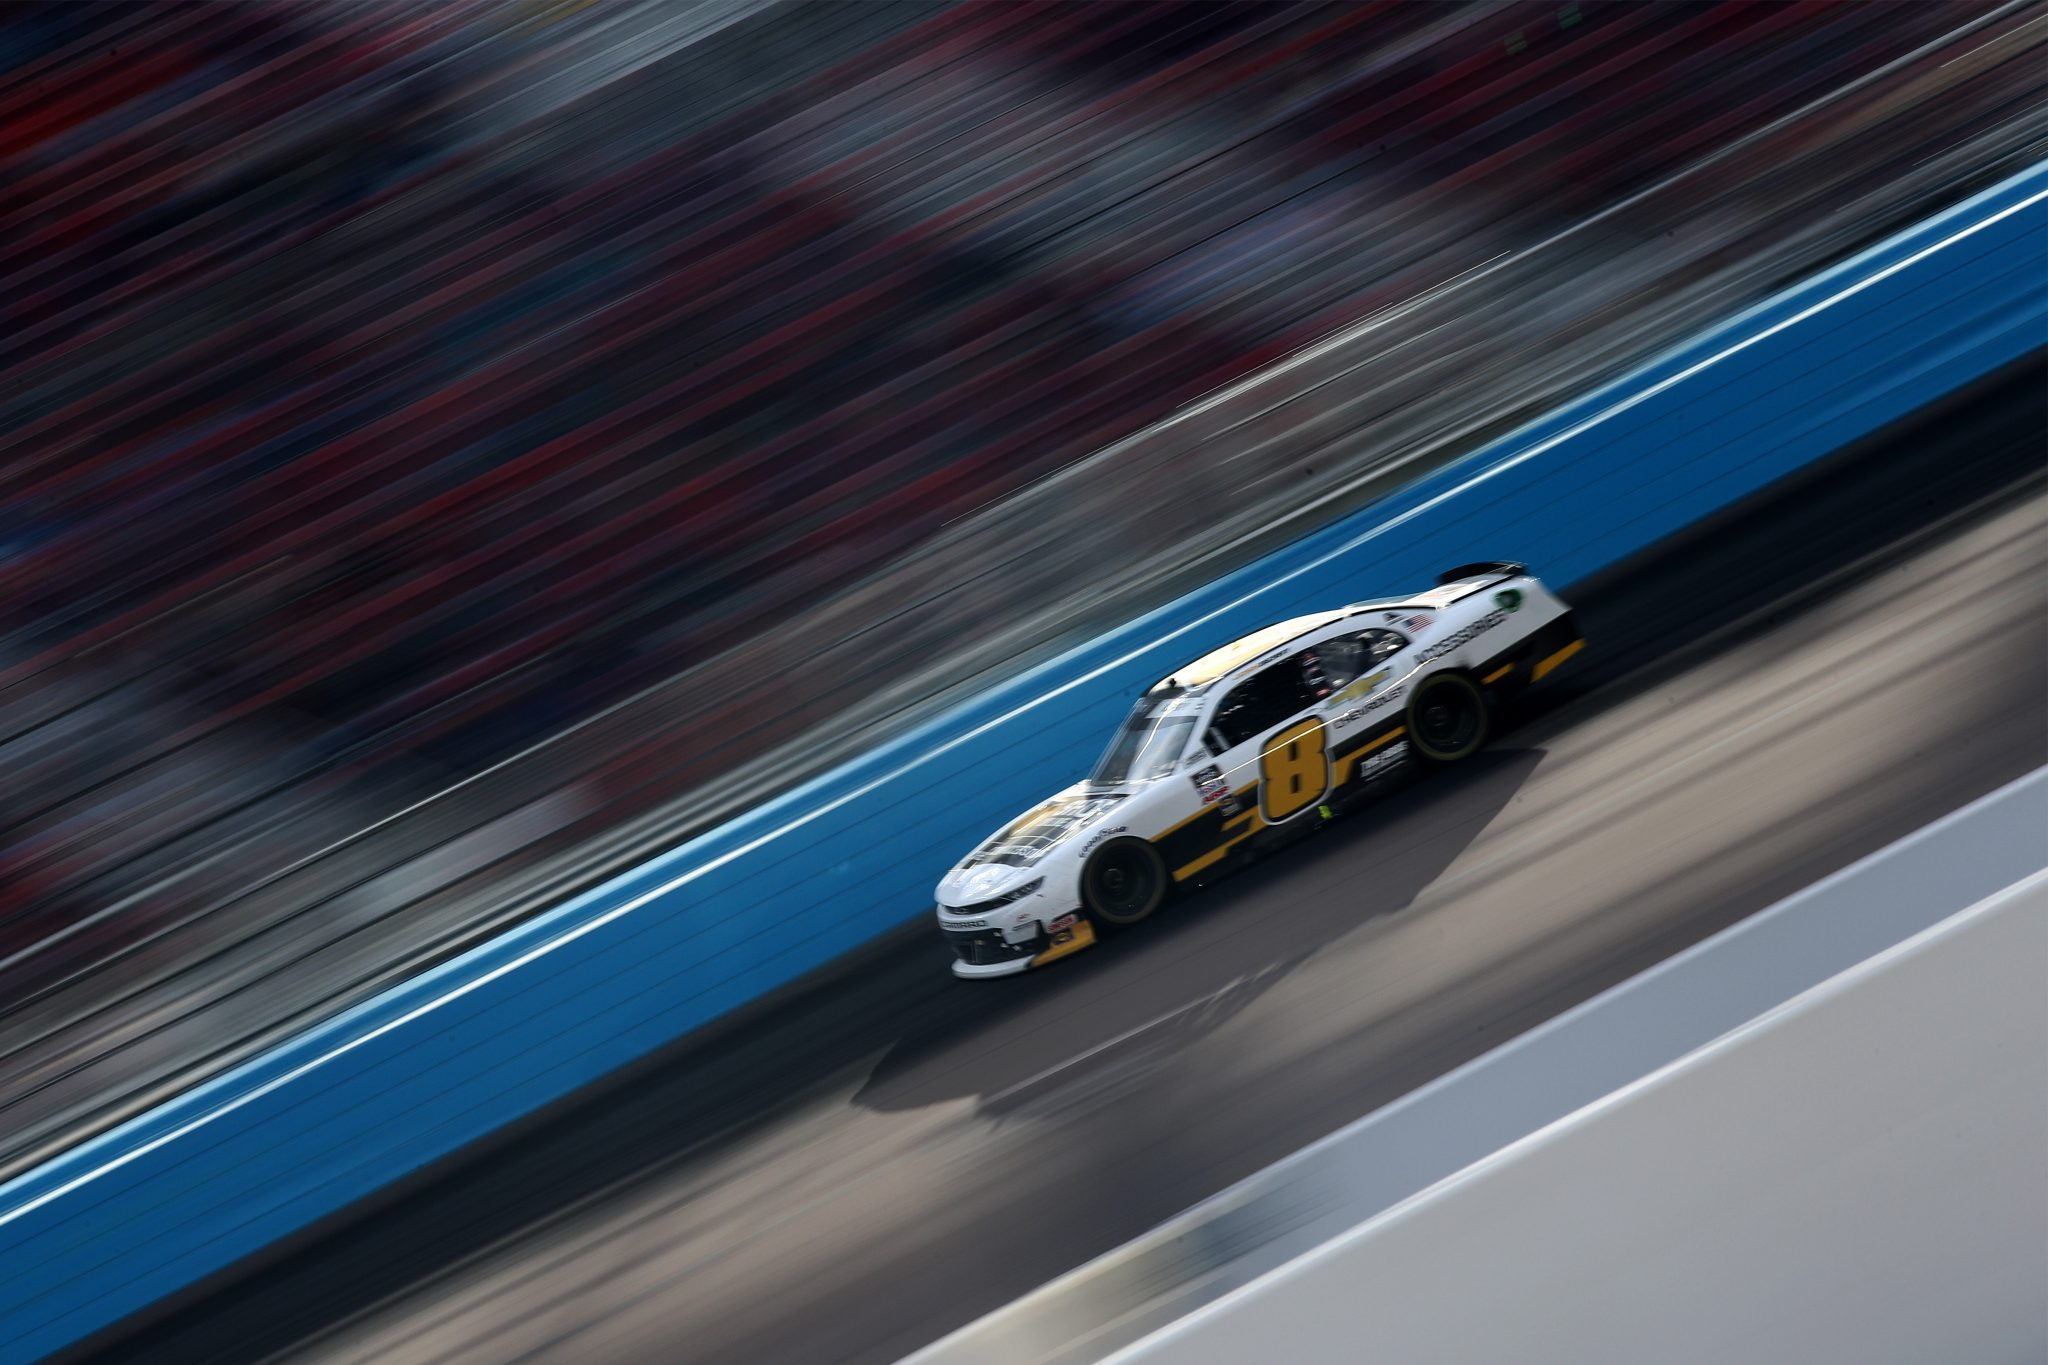 AVONDALE, ARIZONA - MARCH 13: Josh Berry, driver of the #8 Chevrolet Accessories Chevrolet, drives during the NASCAR Xfinity Series Call 811 Before You Dig 200 presented by Arizona 811 at Phoenix Raceway on March 13, 2021 in Avondale, Arizona. (Photo by Sean Gardner/Getty Images) | Getty Images